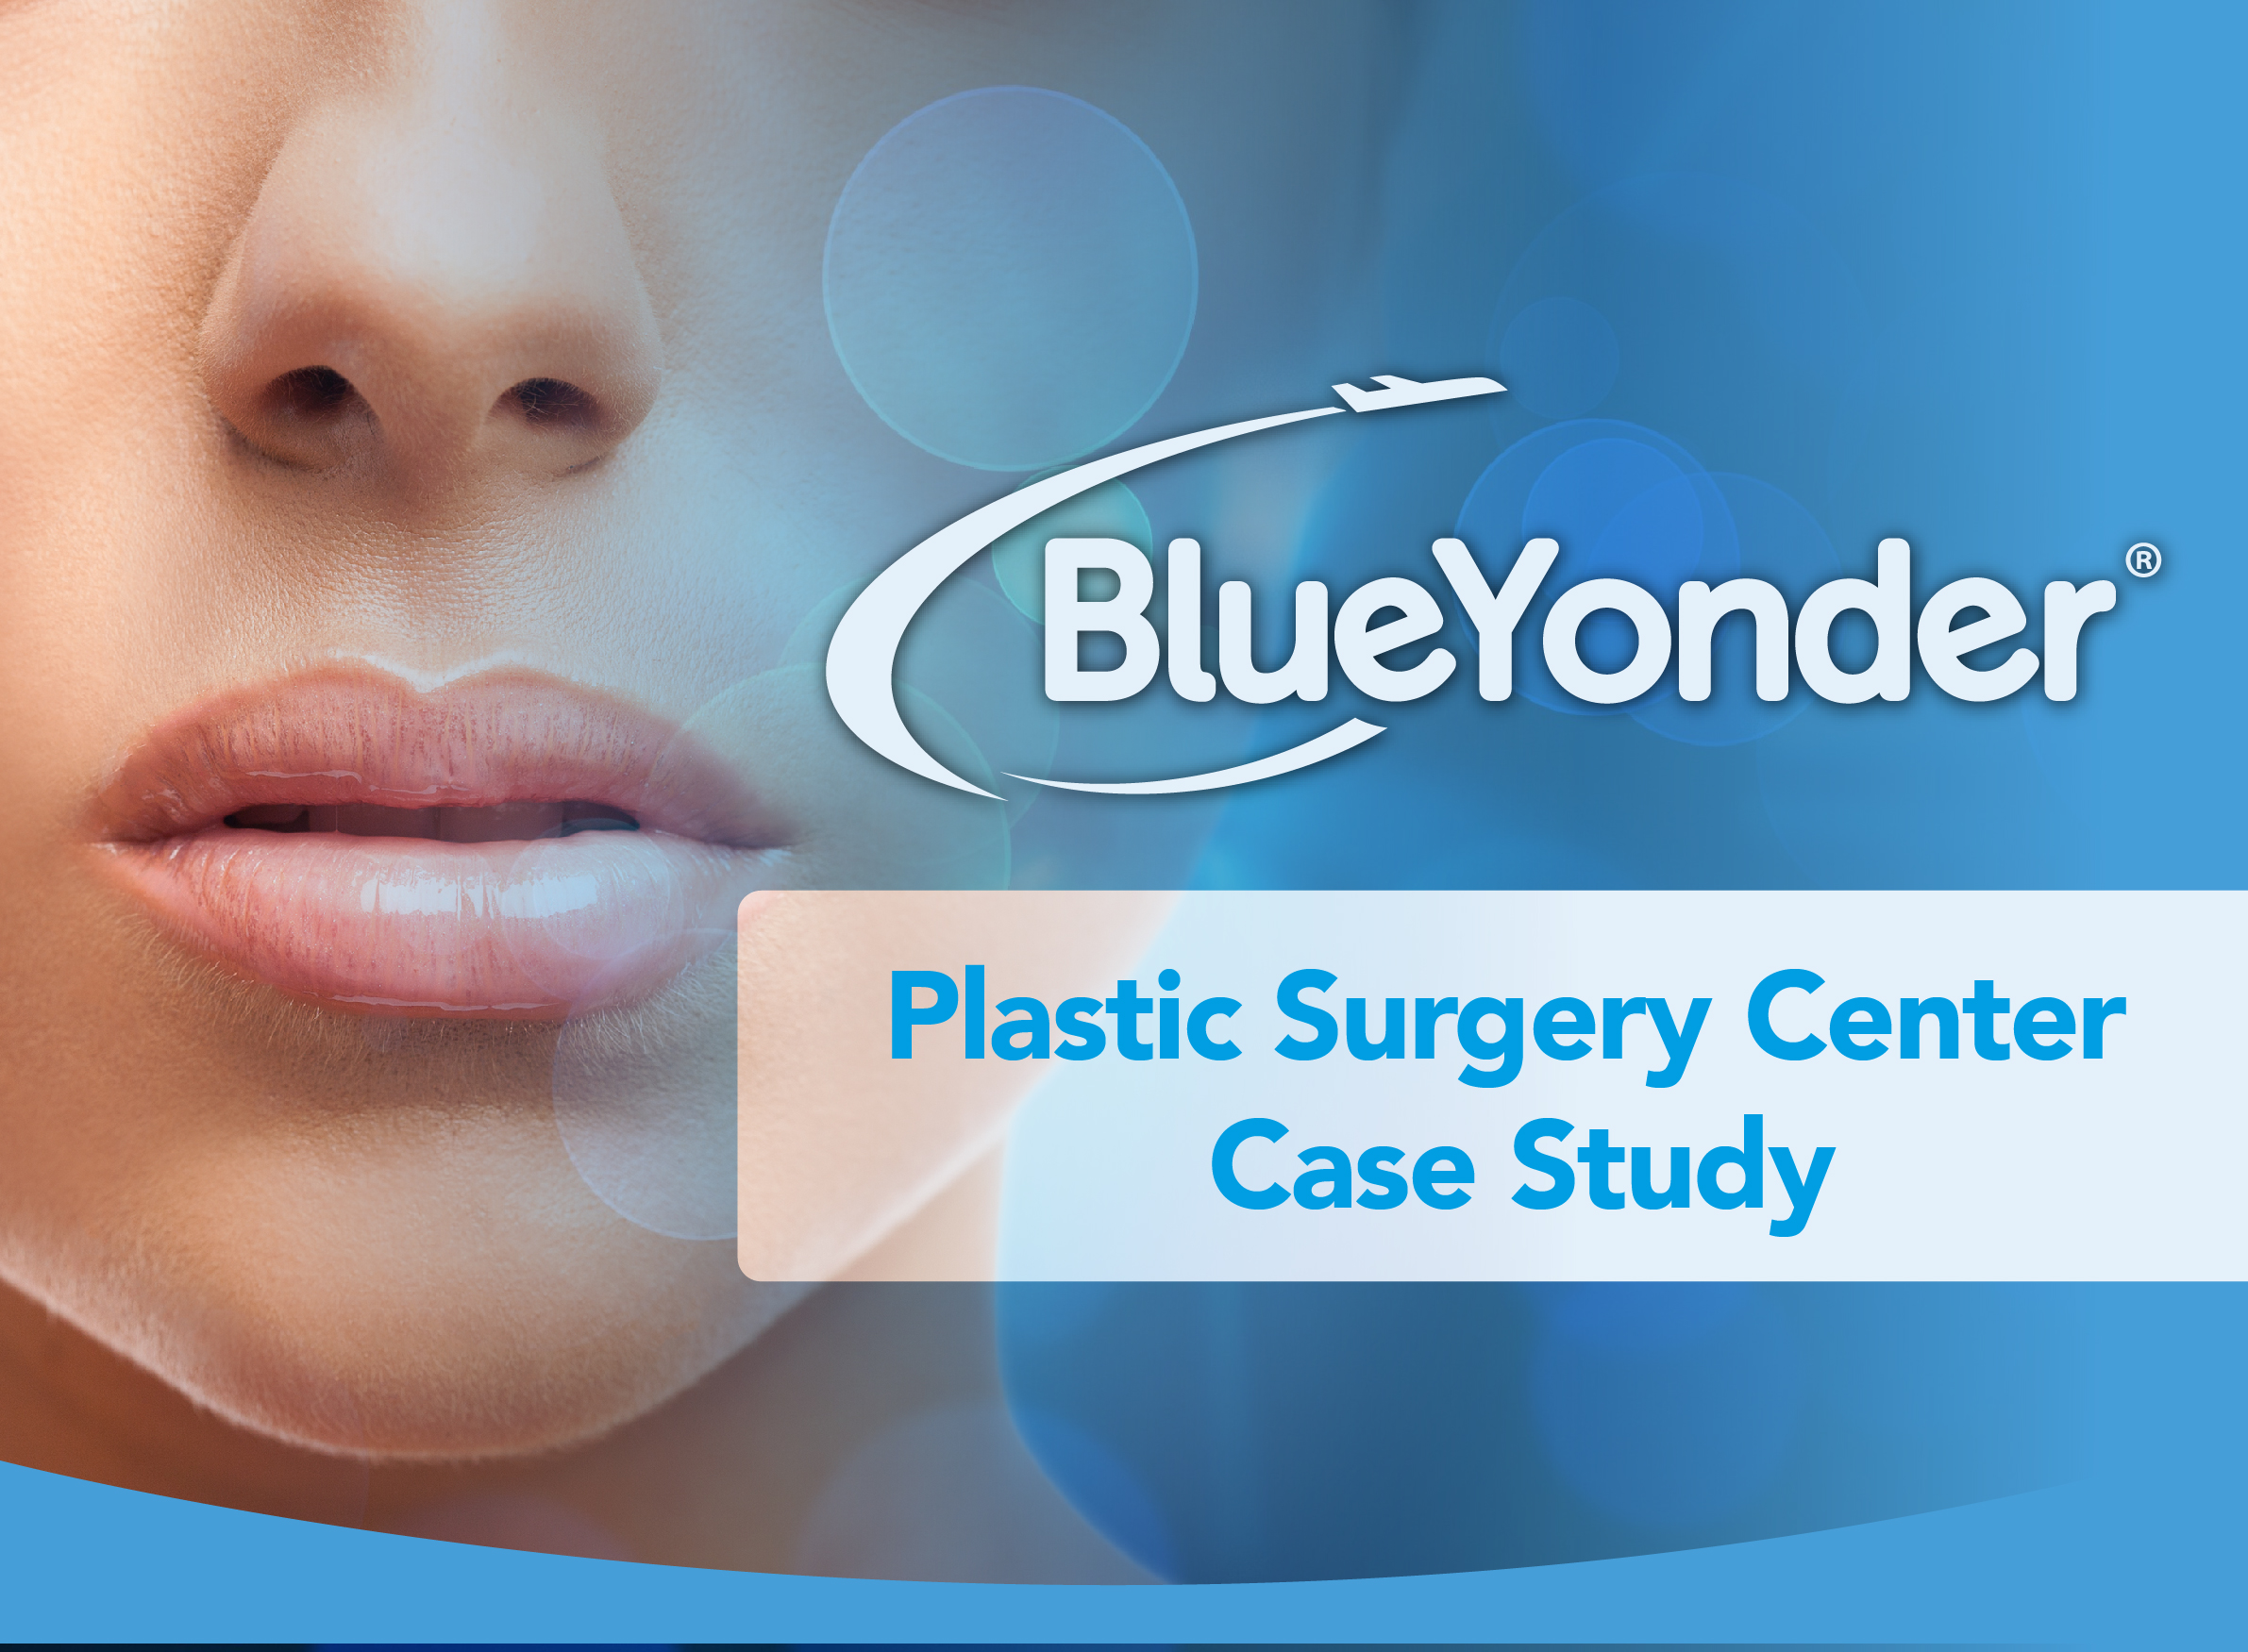 BlueYonder for Plastic Surgery Centers